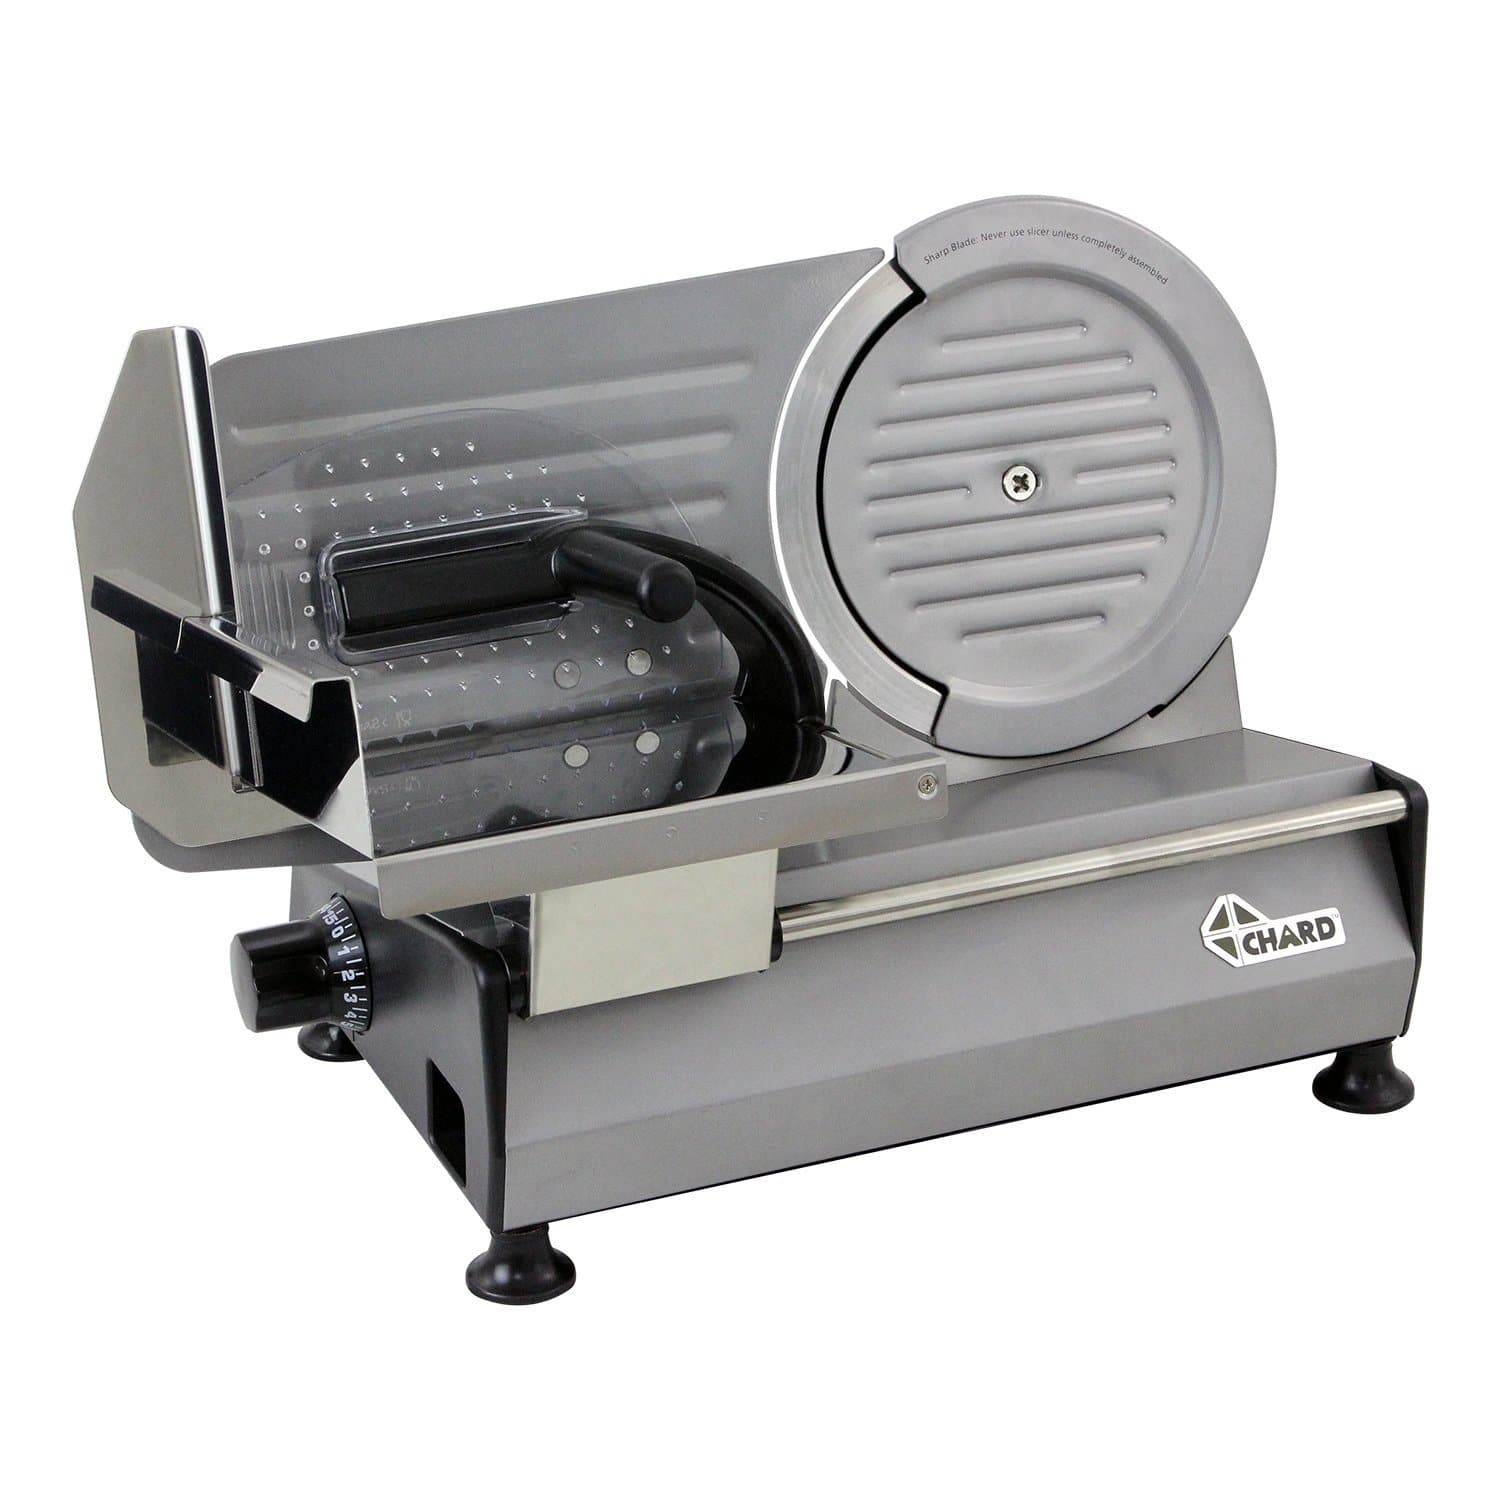 "*Now Dead* 8.6"" CHARD 150 Watt Stainless Steel Electric Meat Slicer (FS-860) $35.31 @ Amazon"